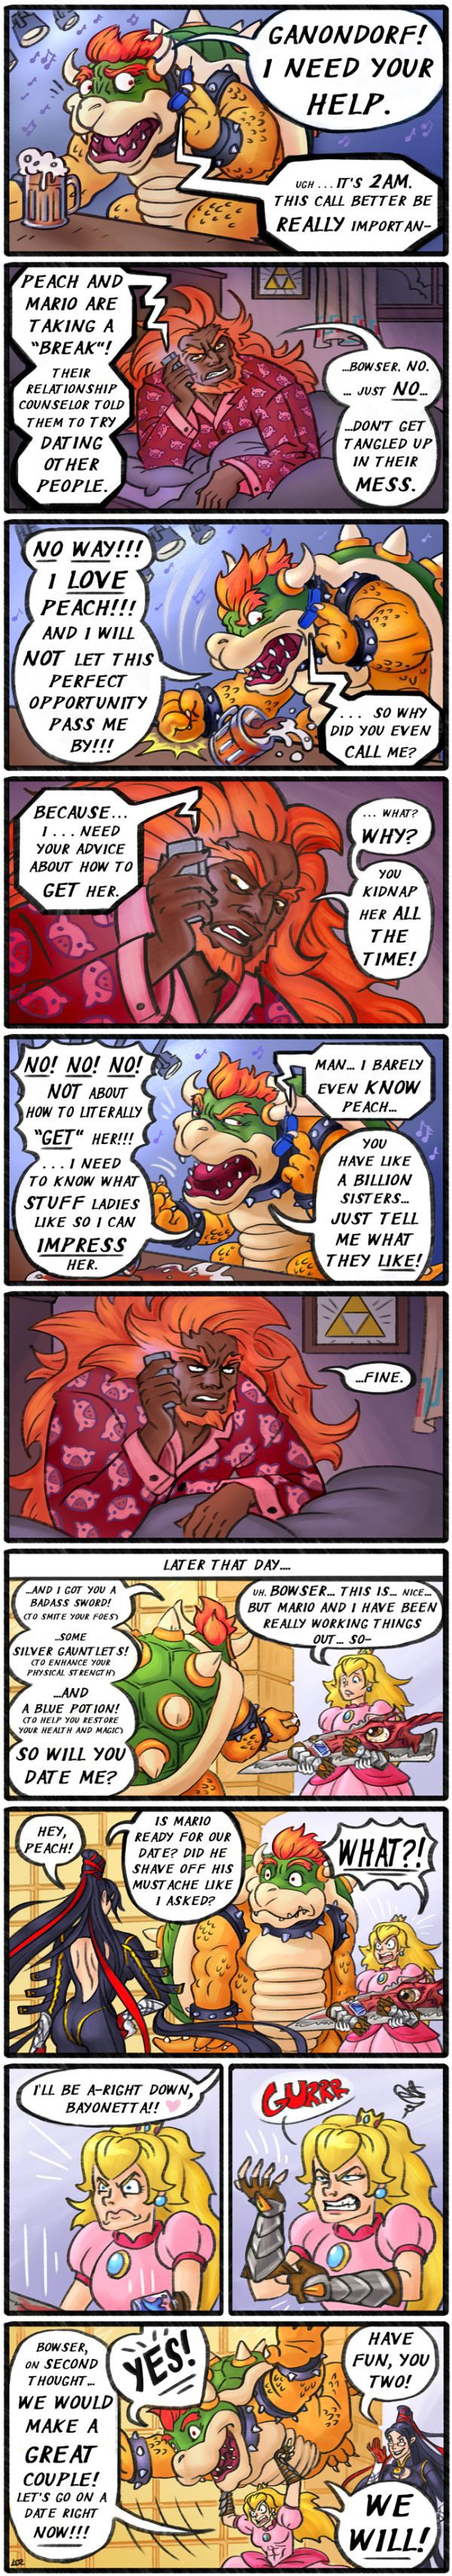 Peach and bowser sexy comic pic